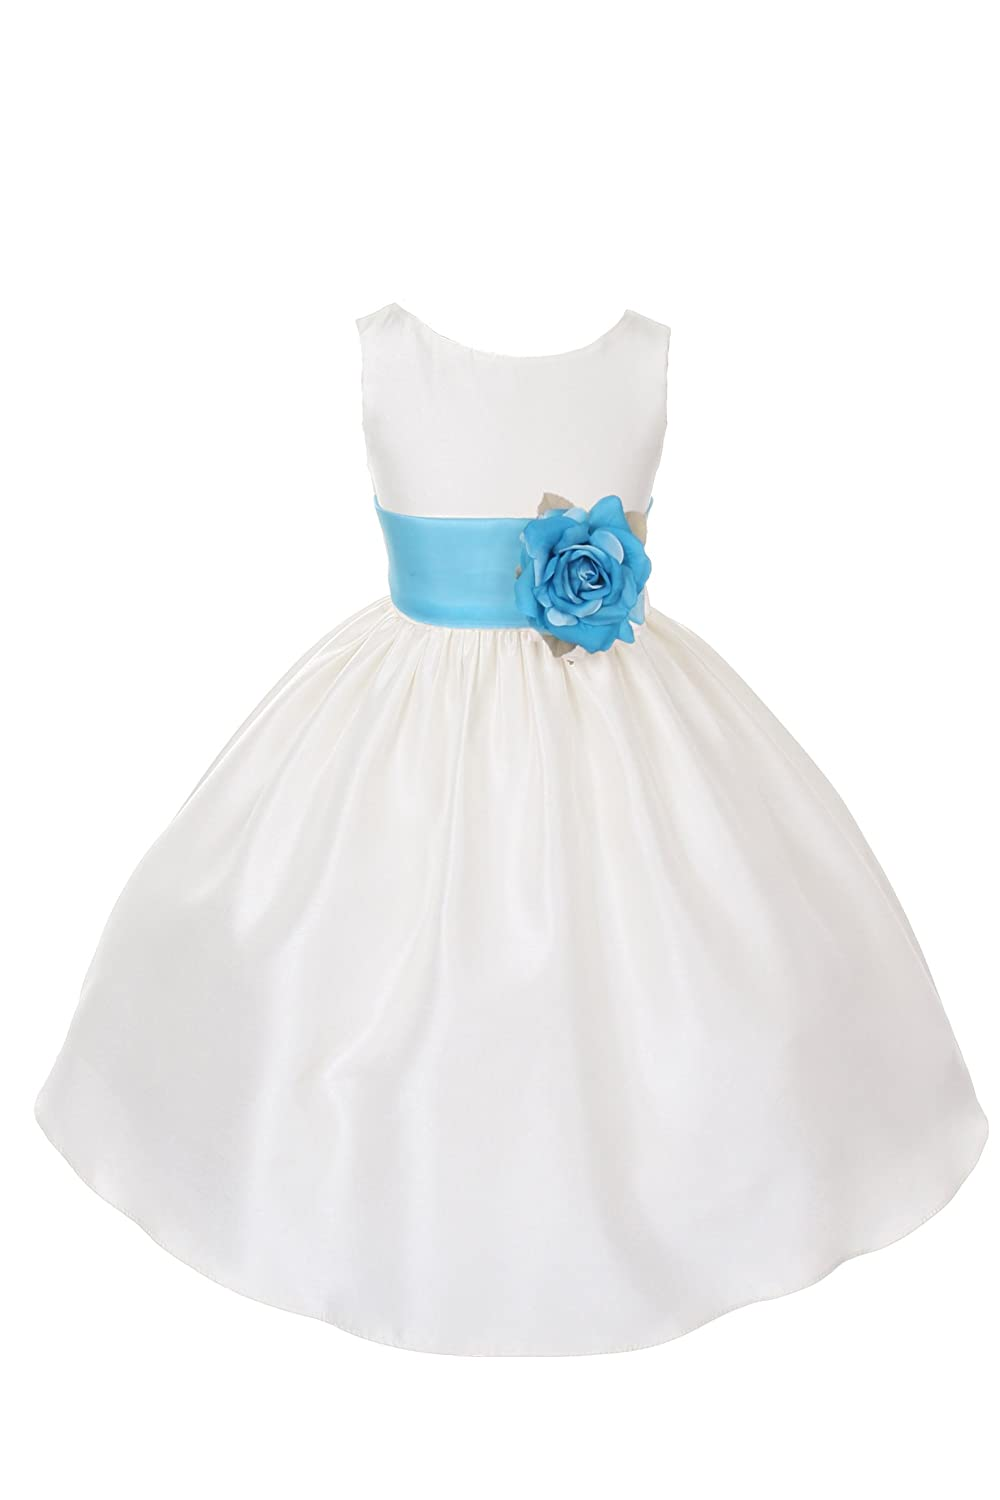 b052710a2 Amazon.com: 23 Colors Poly Silk Flower Girl Pageant Dress w/Sash and Flowers  Infant-14: Clothing